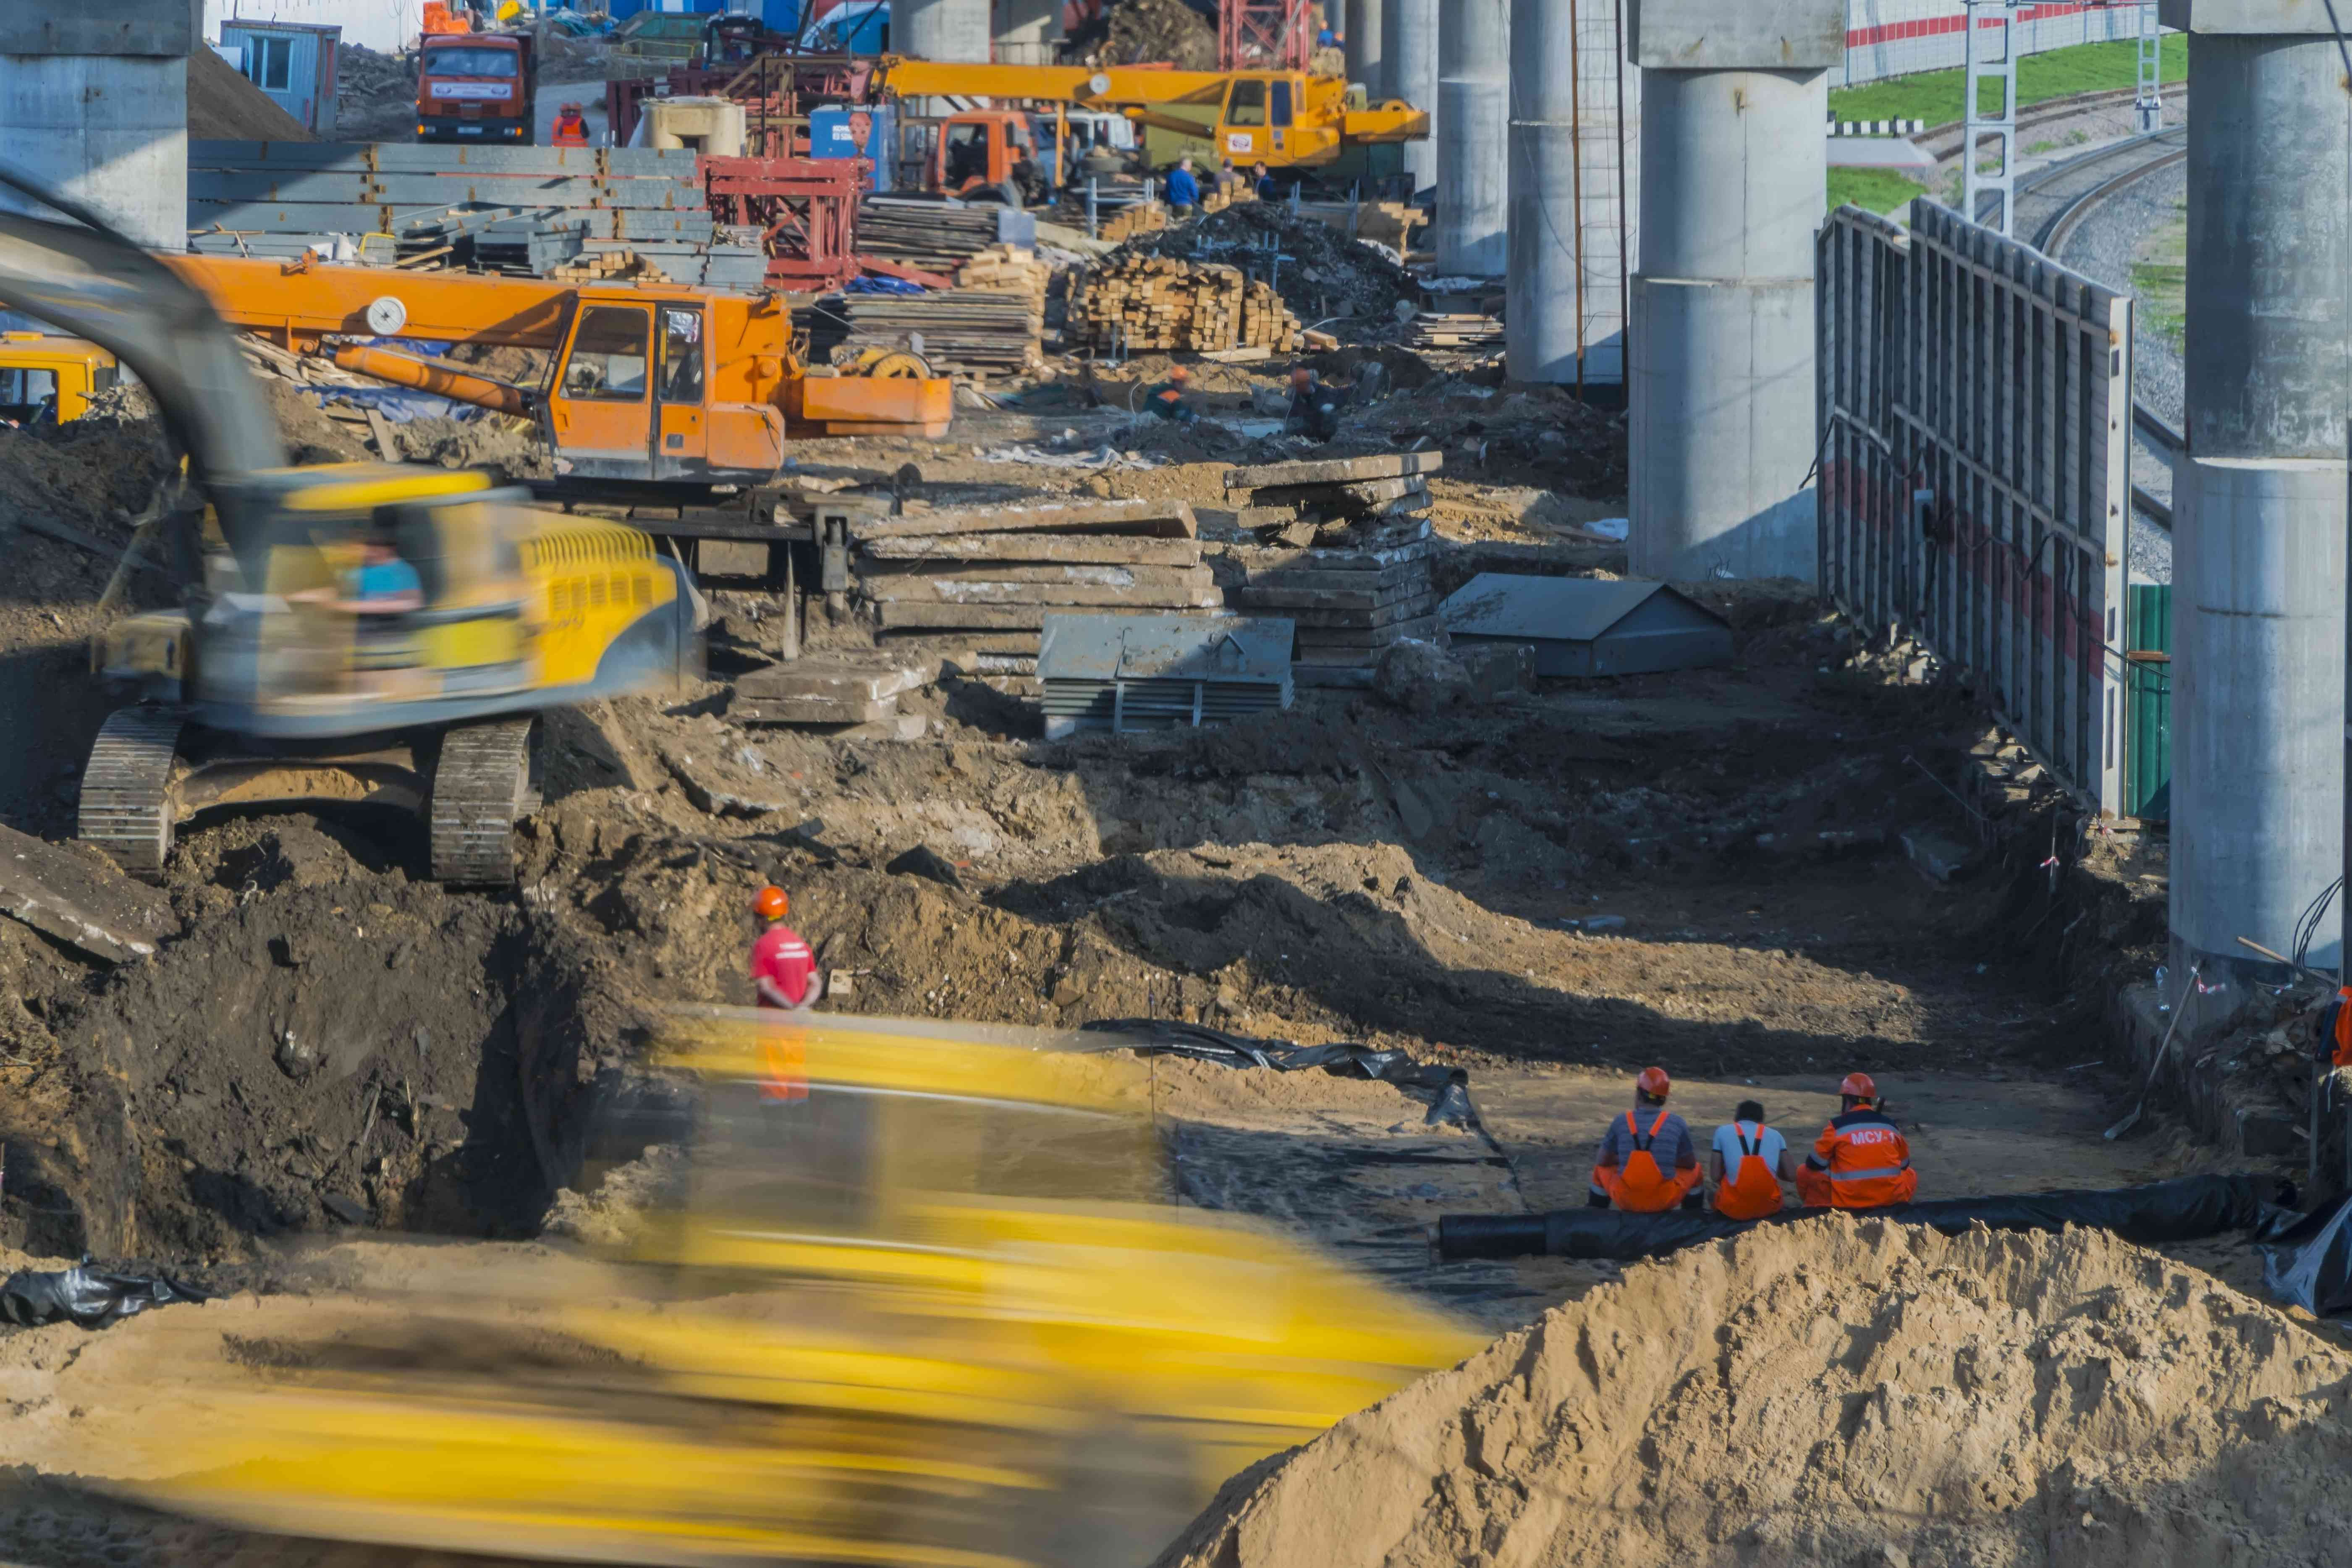 intensive work on the construction of a high-speed overpass,